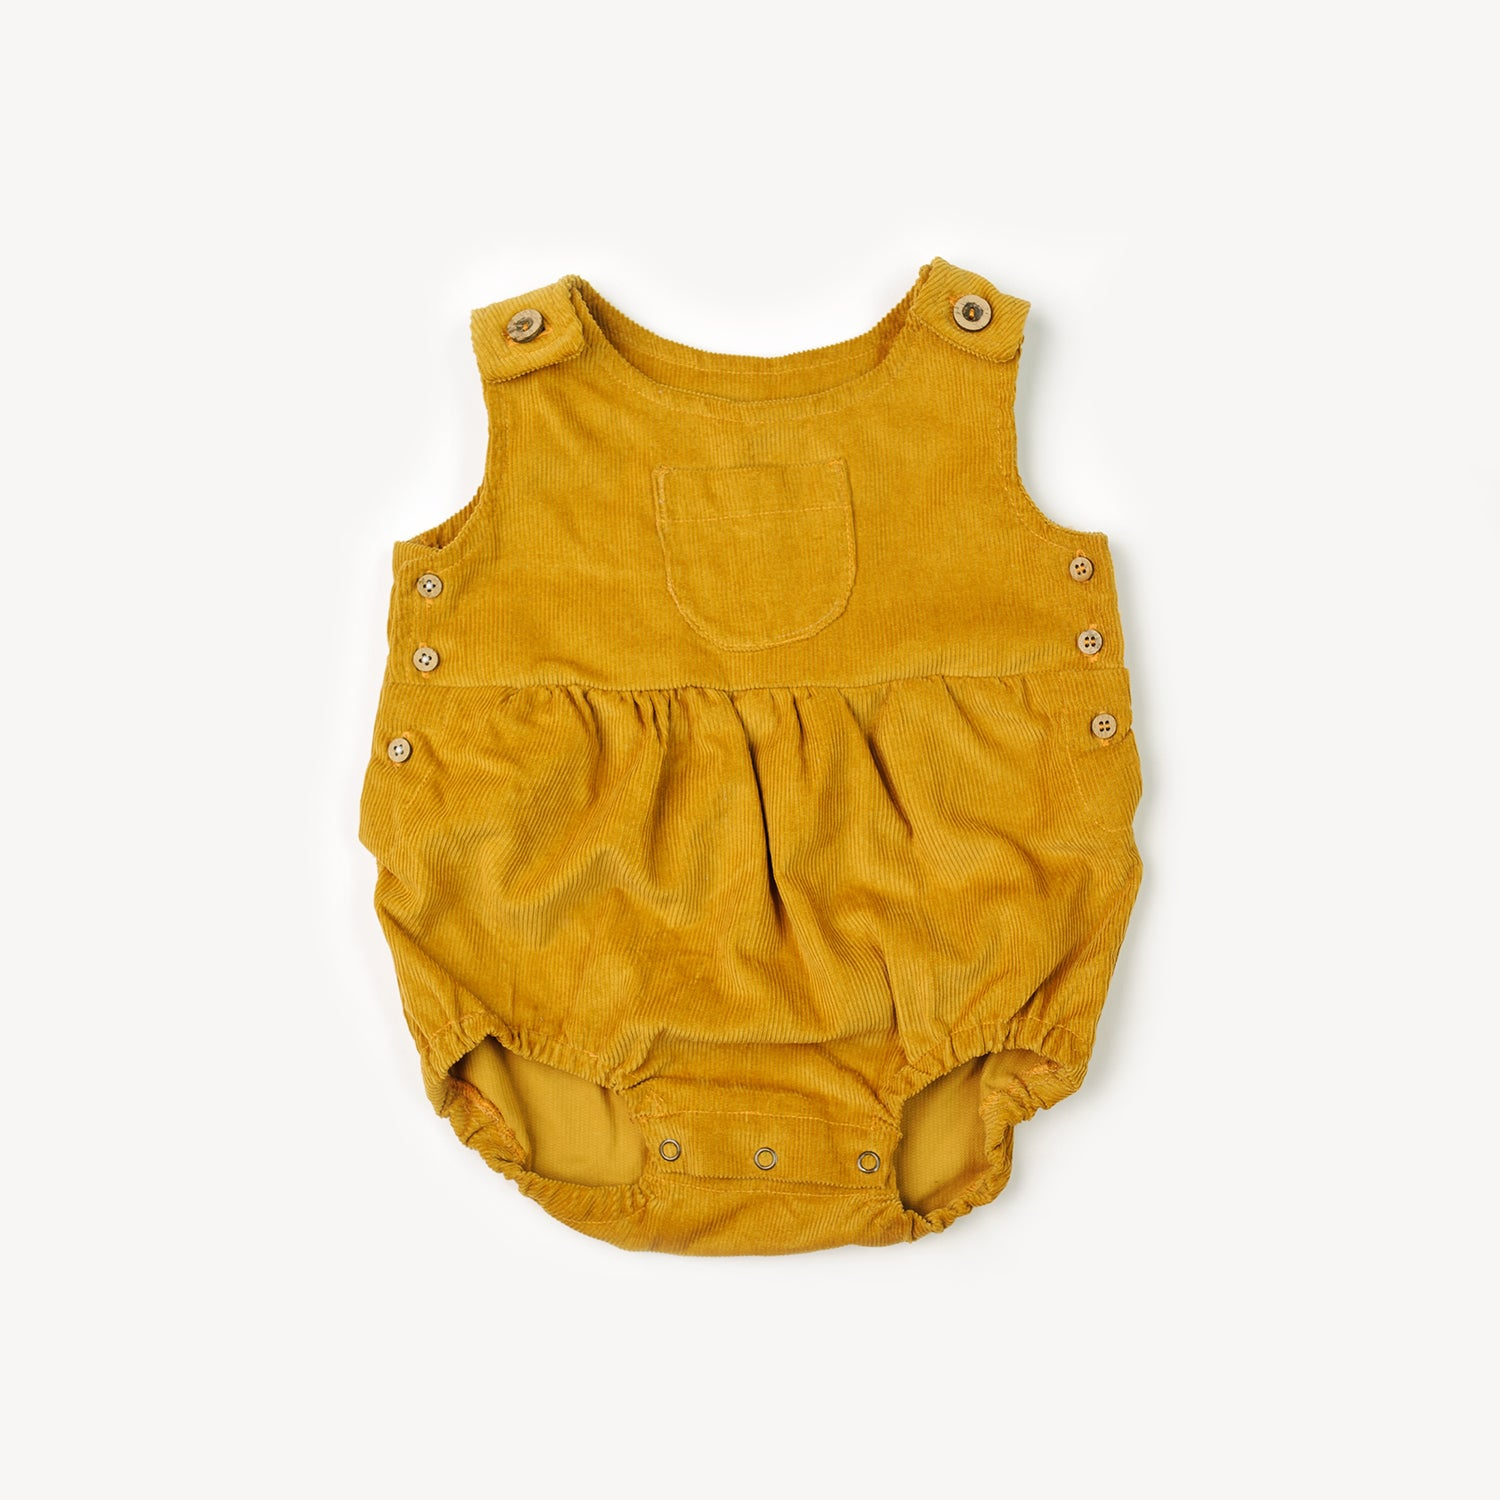 Fin and Vince - Corduroy Romper (Mustard)